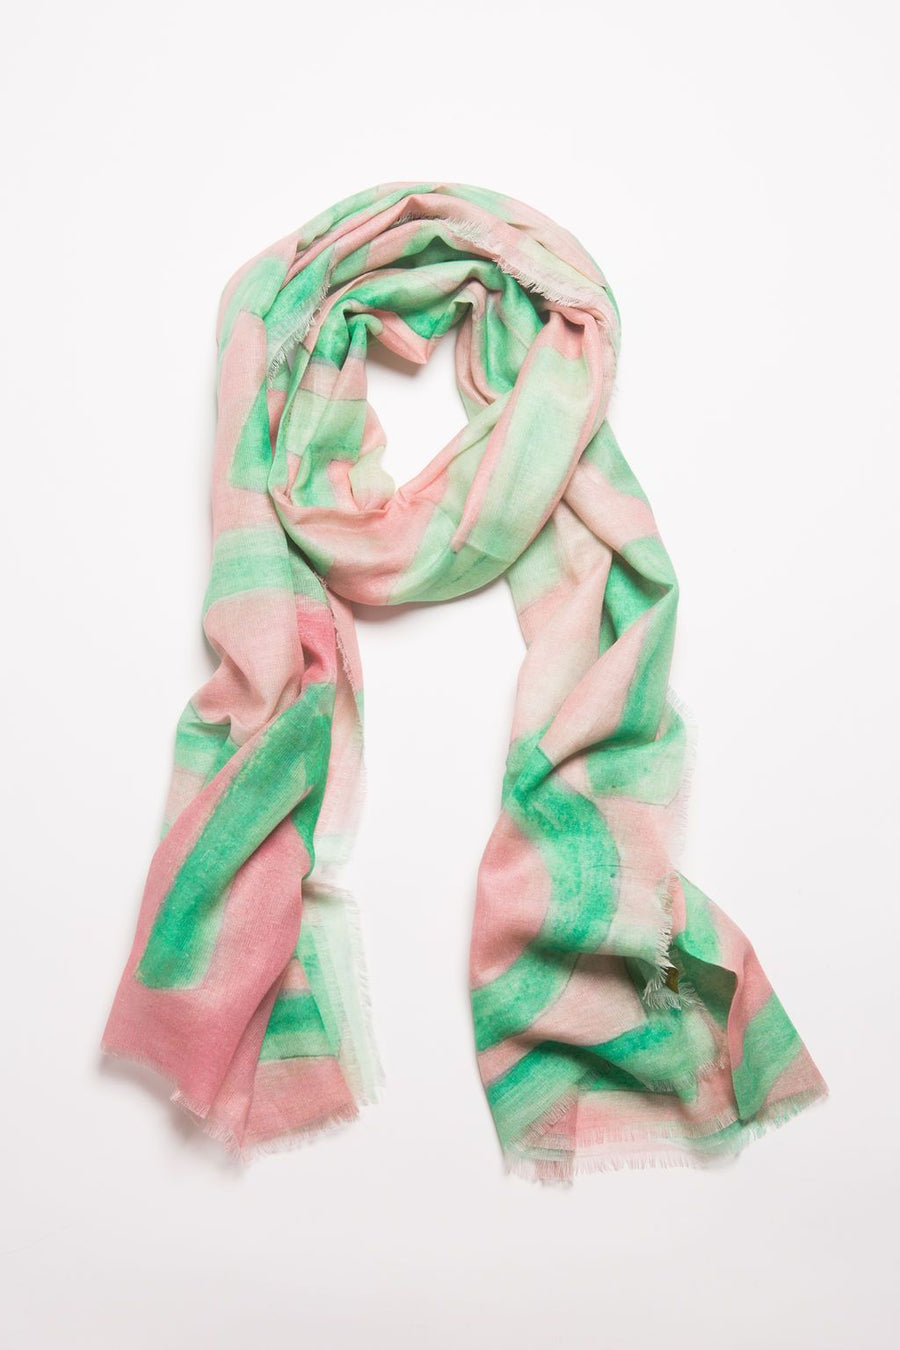 Cotton Linen Modal LOVE Scarf: Large Pink & Green